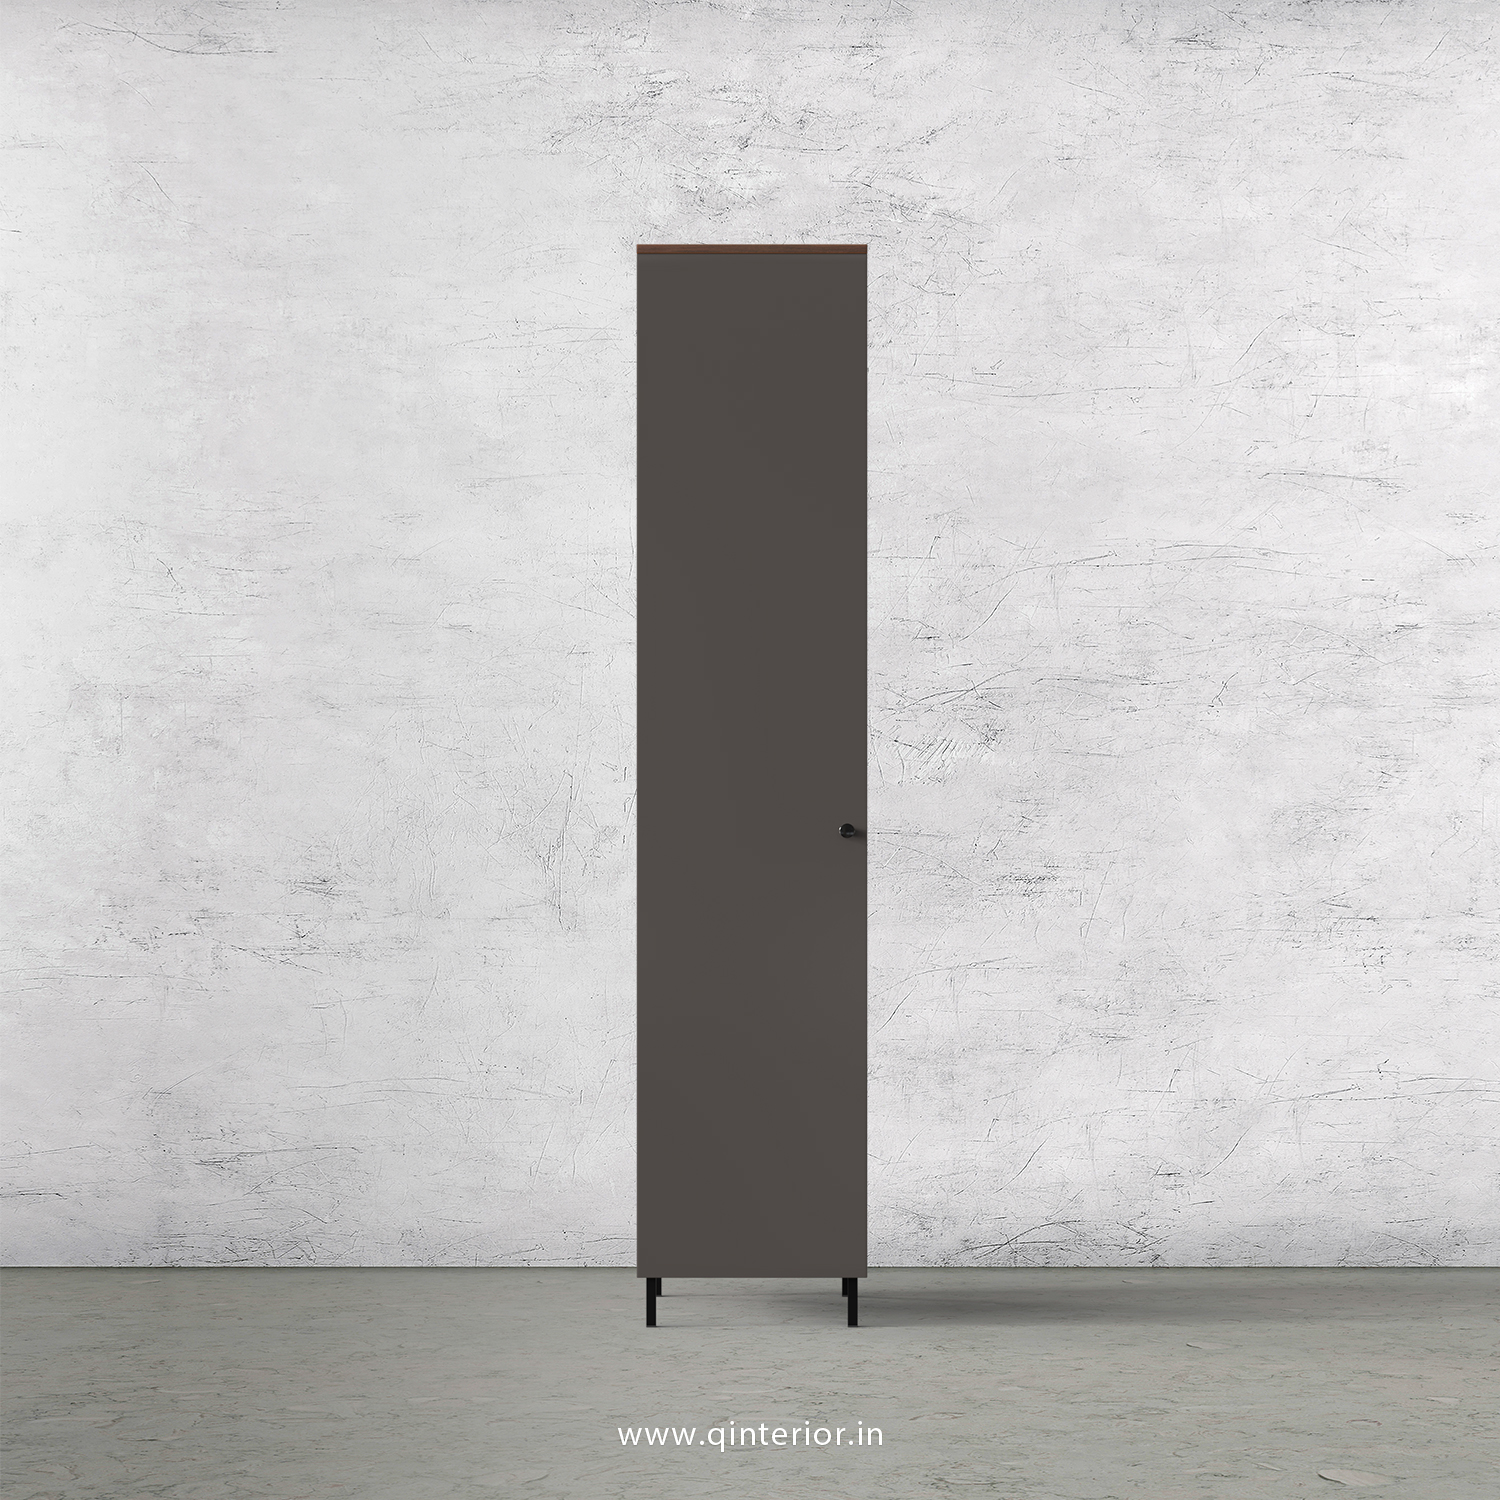 Lambent 1 Door Wardrobe in Teak and Slate Finish – SWRD001 C15